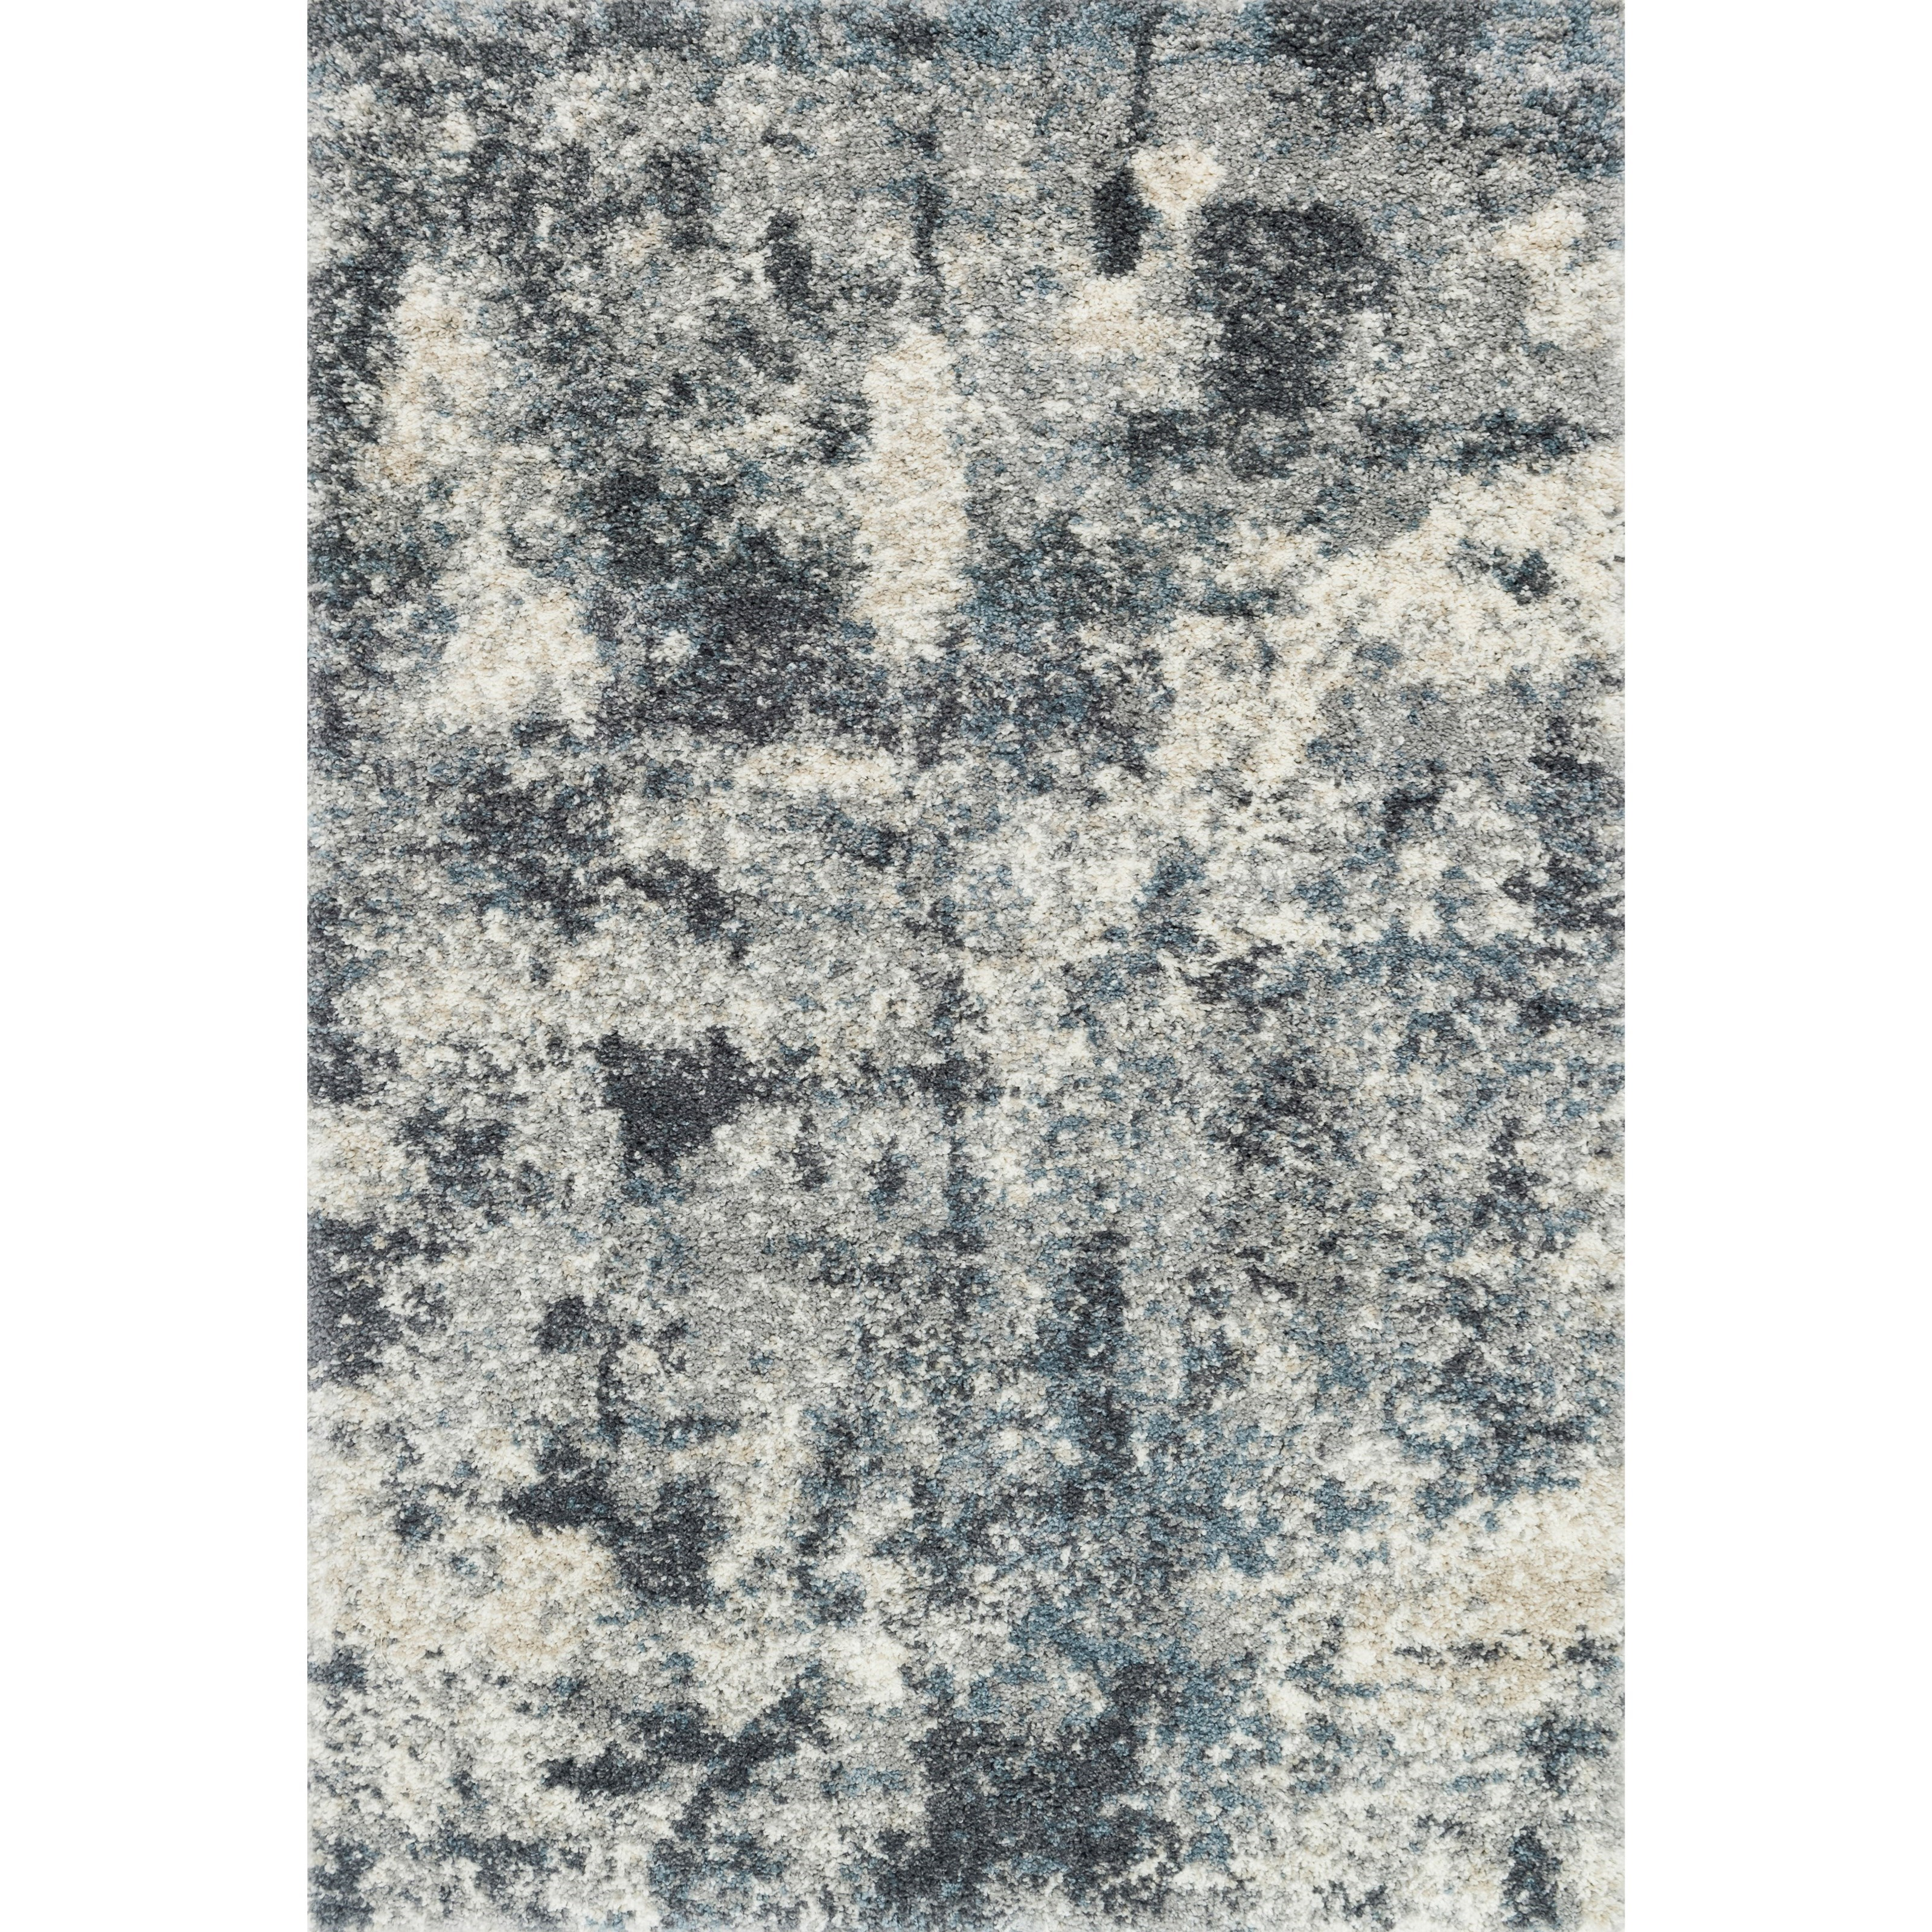 """Quincy 1'6"""" x 1'6""""  Slate Rug by Loloi Rugs at Virginia Furniture Market"""